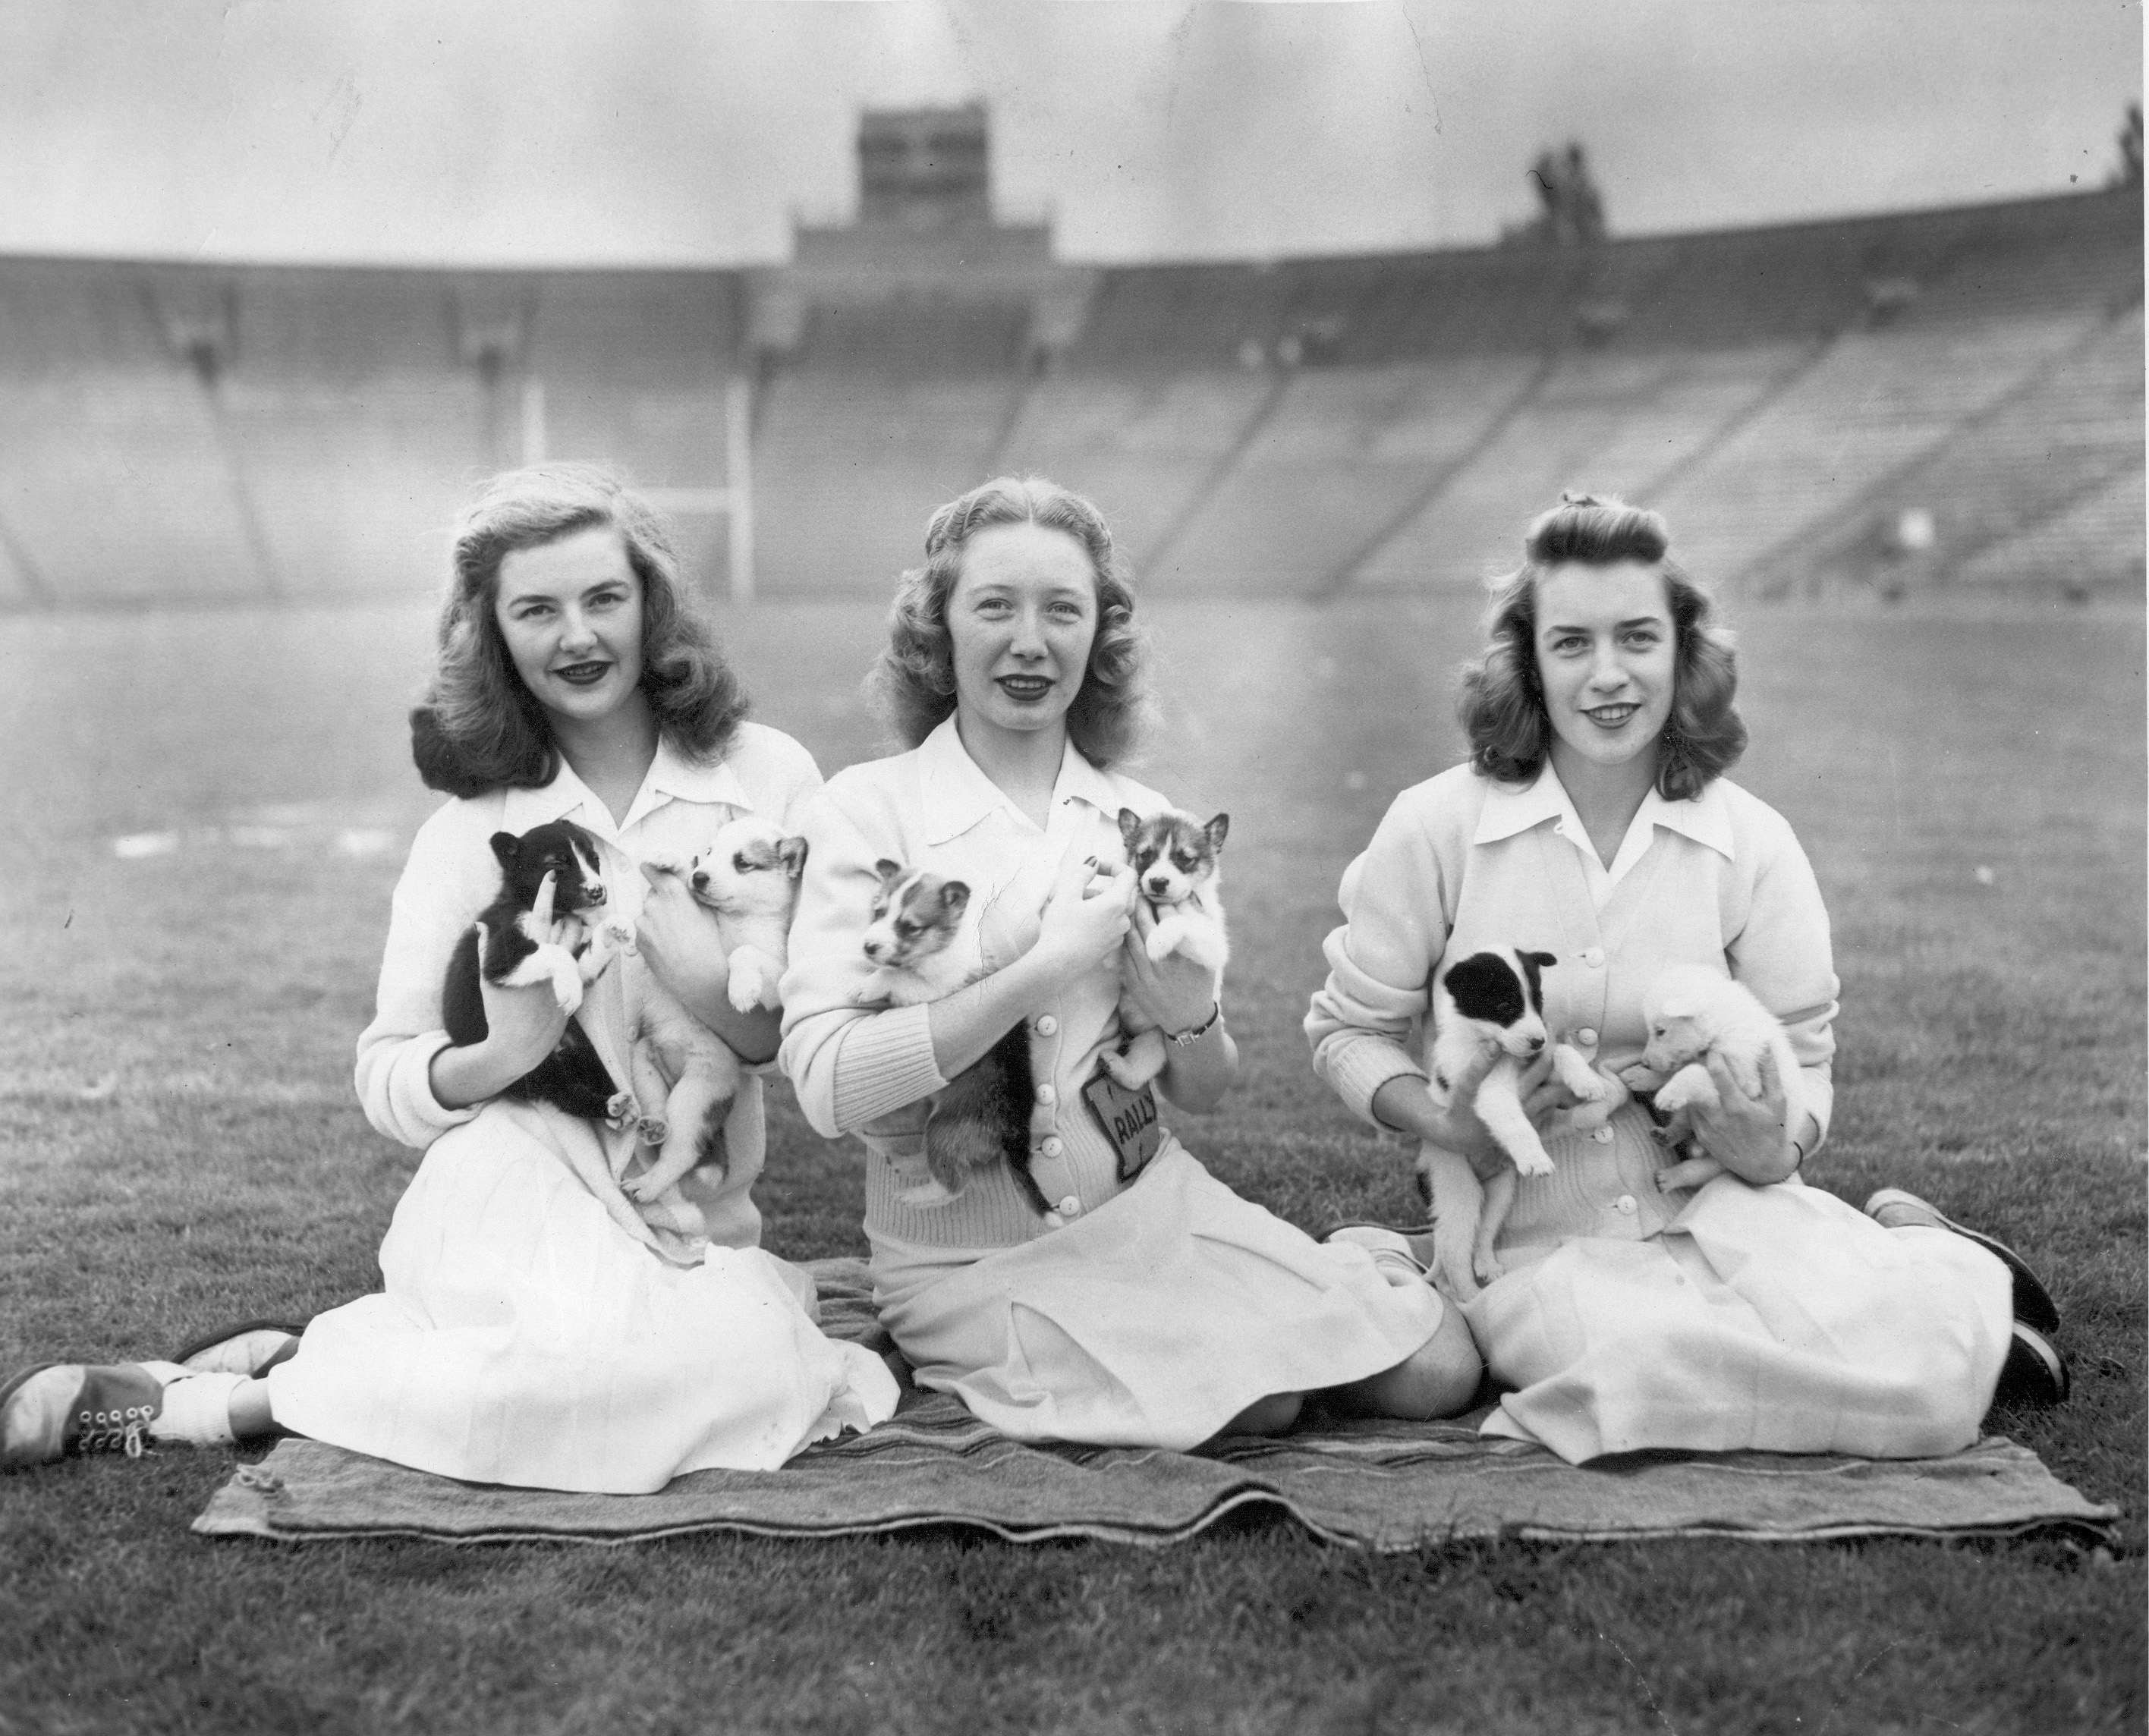 One of these puppies was chosen to become the Husky mascot! A campus poll was held at the University Book Store to determine the official mascot. The winning pup was presented to the students at the Homecoming game on Oct 26, 1946.